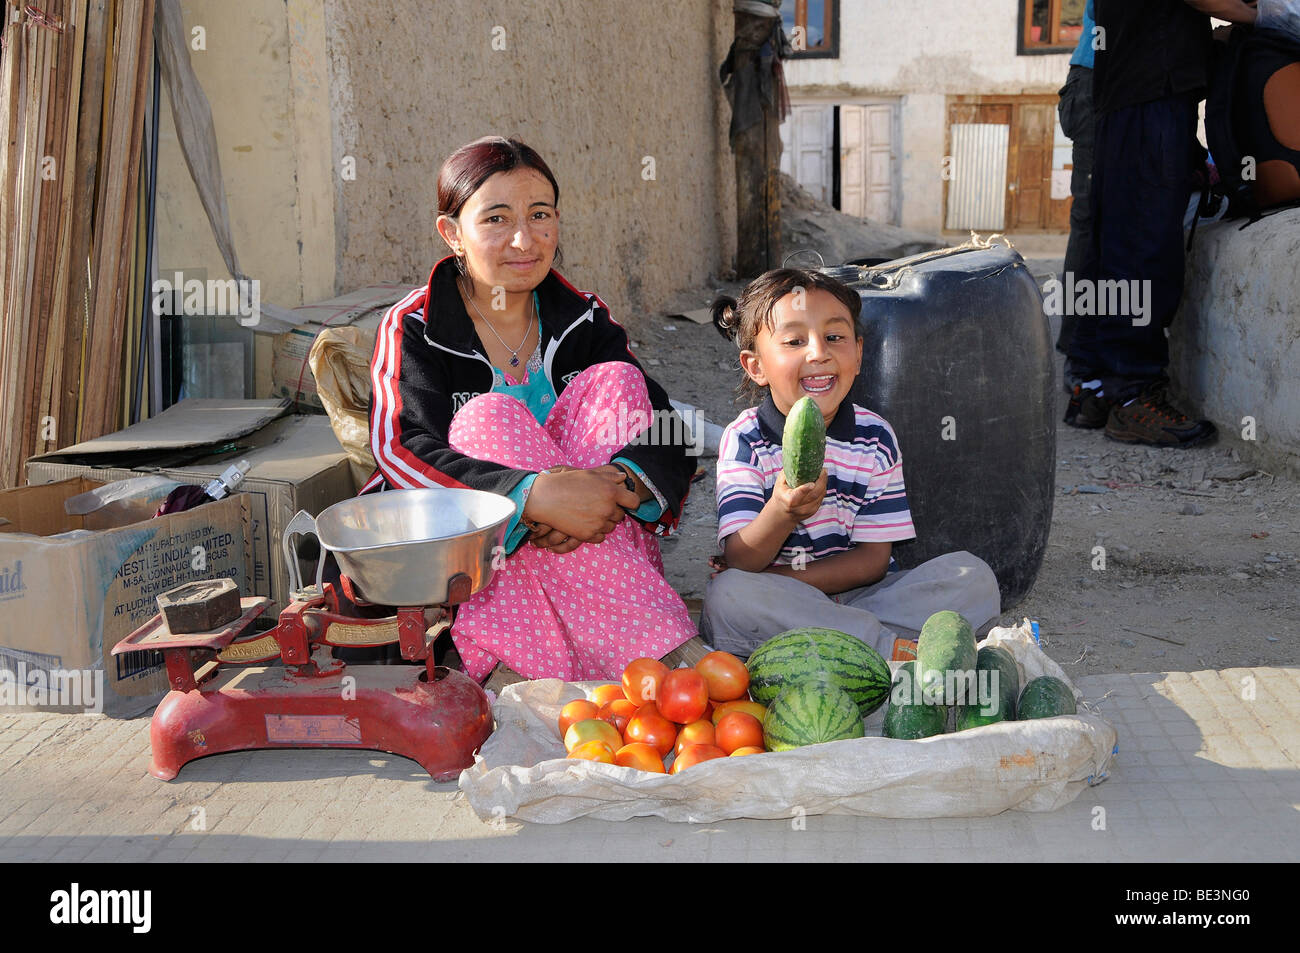 Ladakh street vendors in their small booth on the streets of Leh, Ladakh, Northern India, India, Himalayas - Stock Image